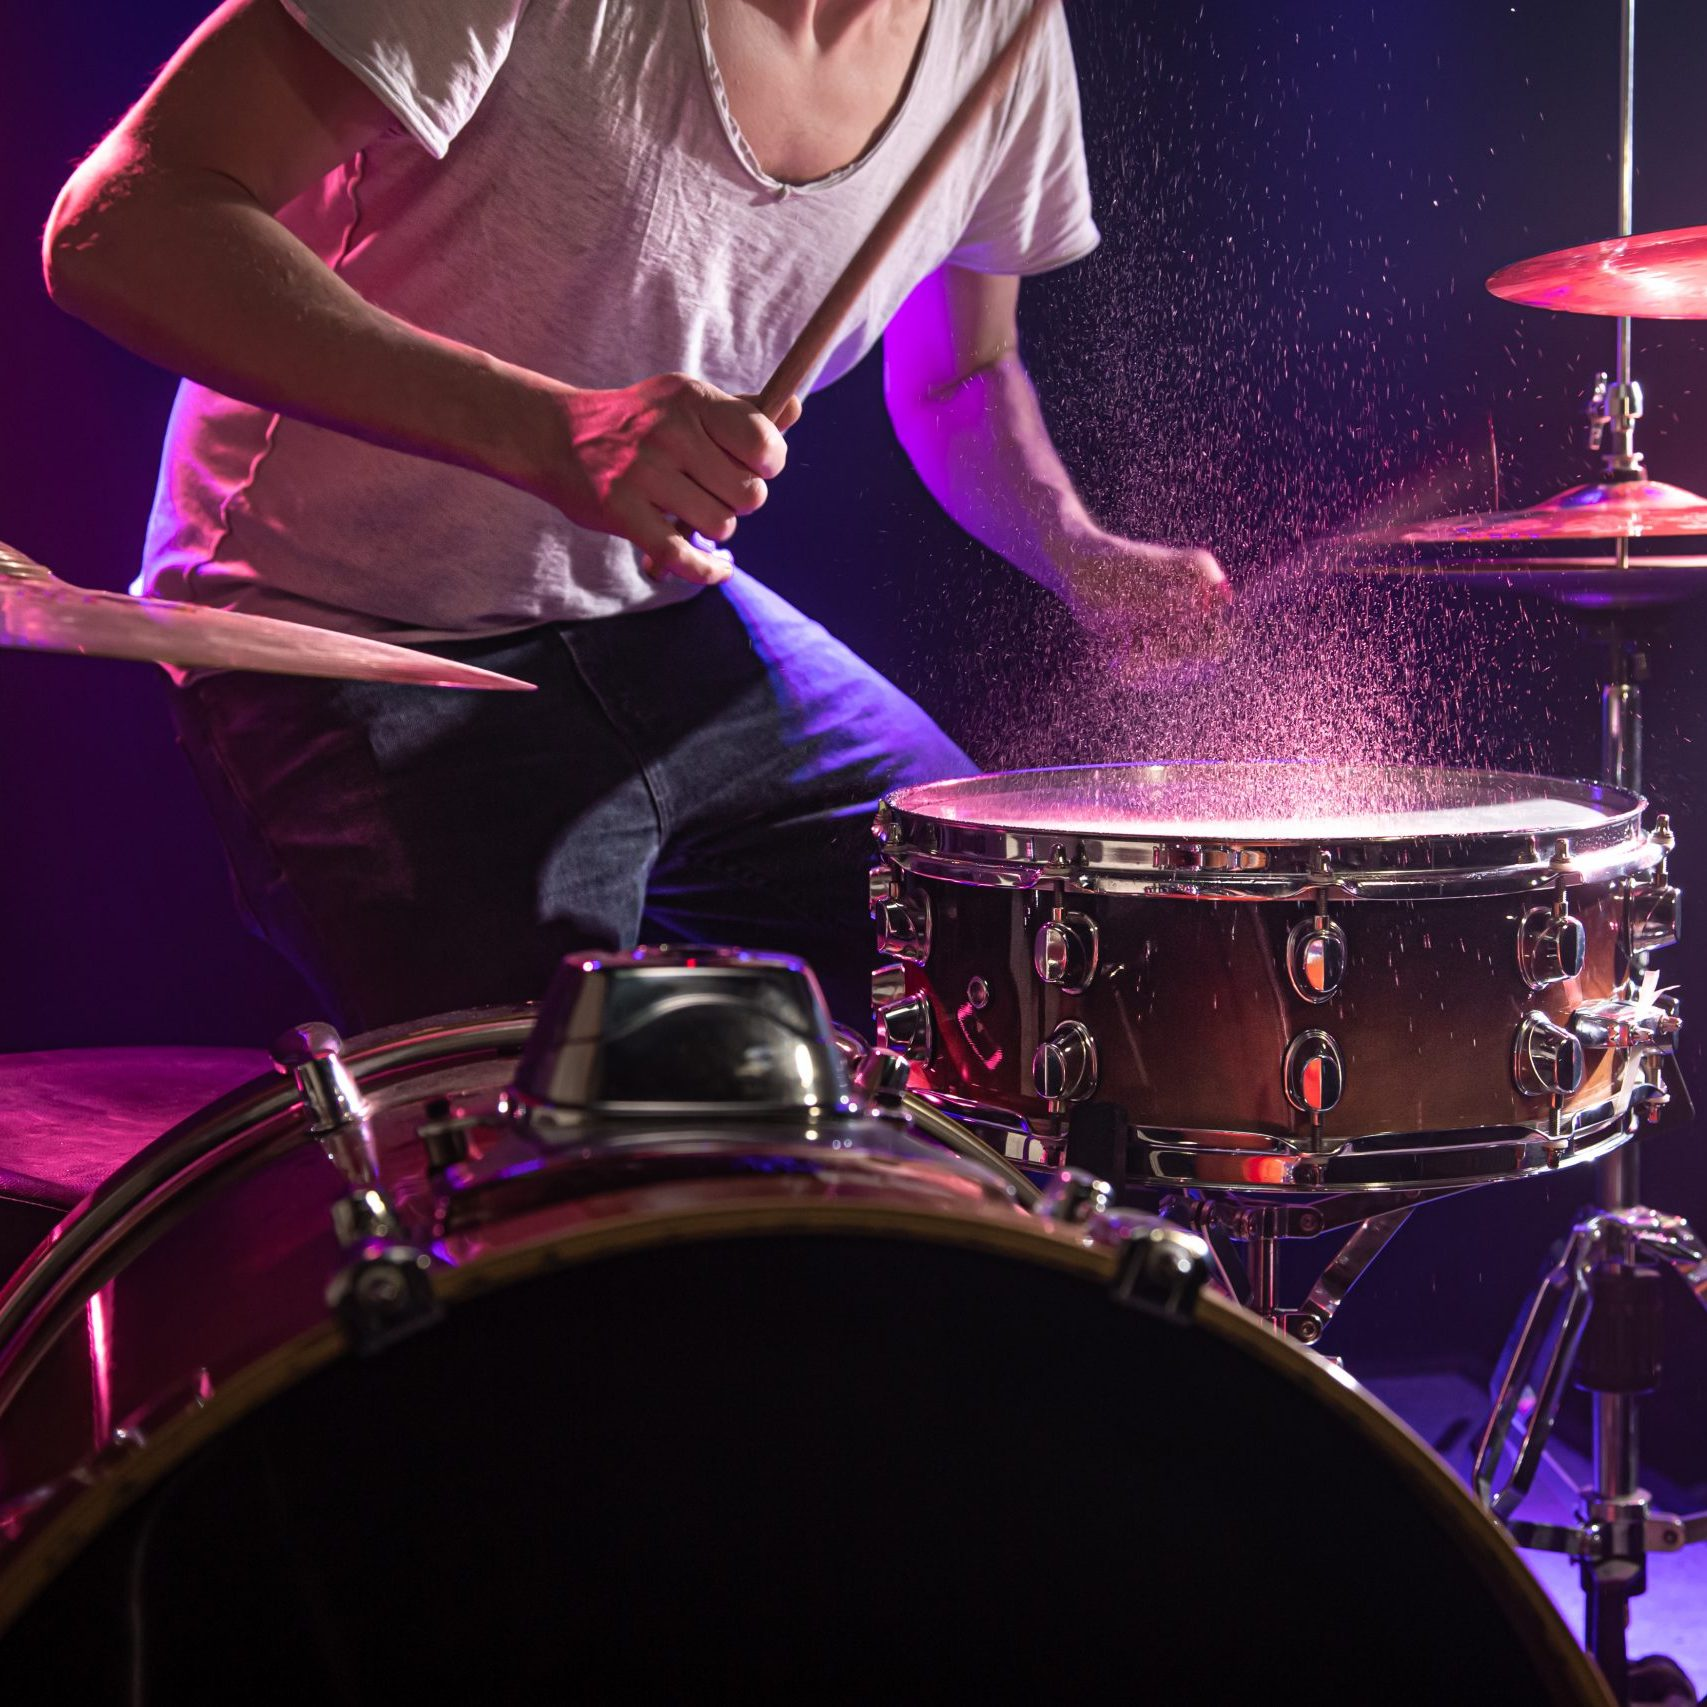 The drummer plays the drums. Beautiful blue and red background, with rays of light. Beautiful special effects smoke and lighting. The process of playing a musical instrument. The concept of music. Close-up photo.